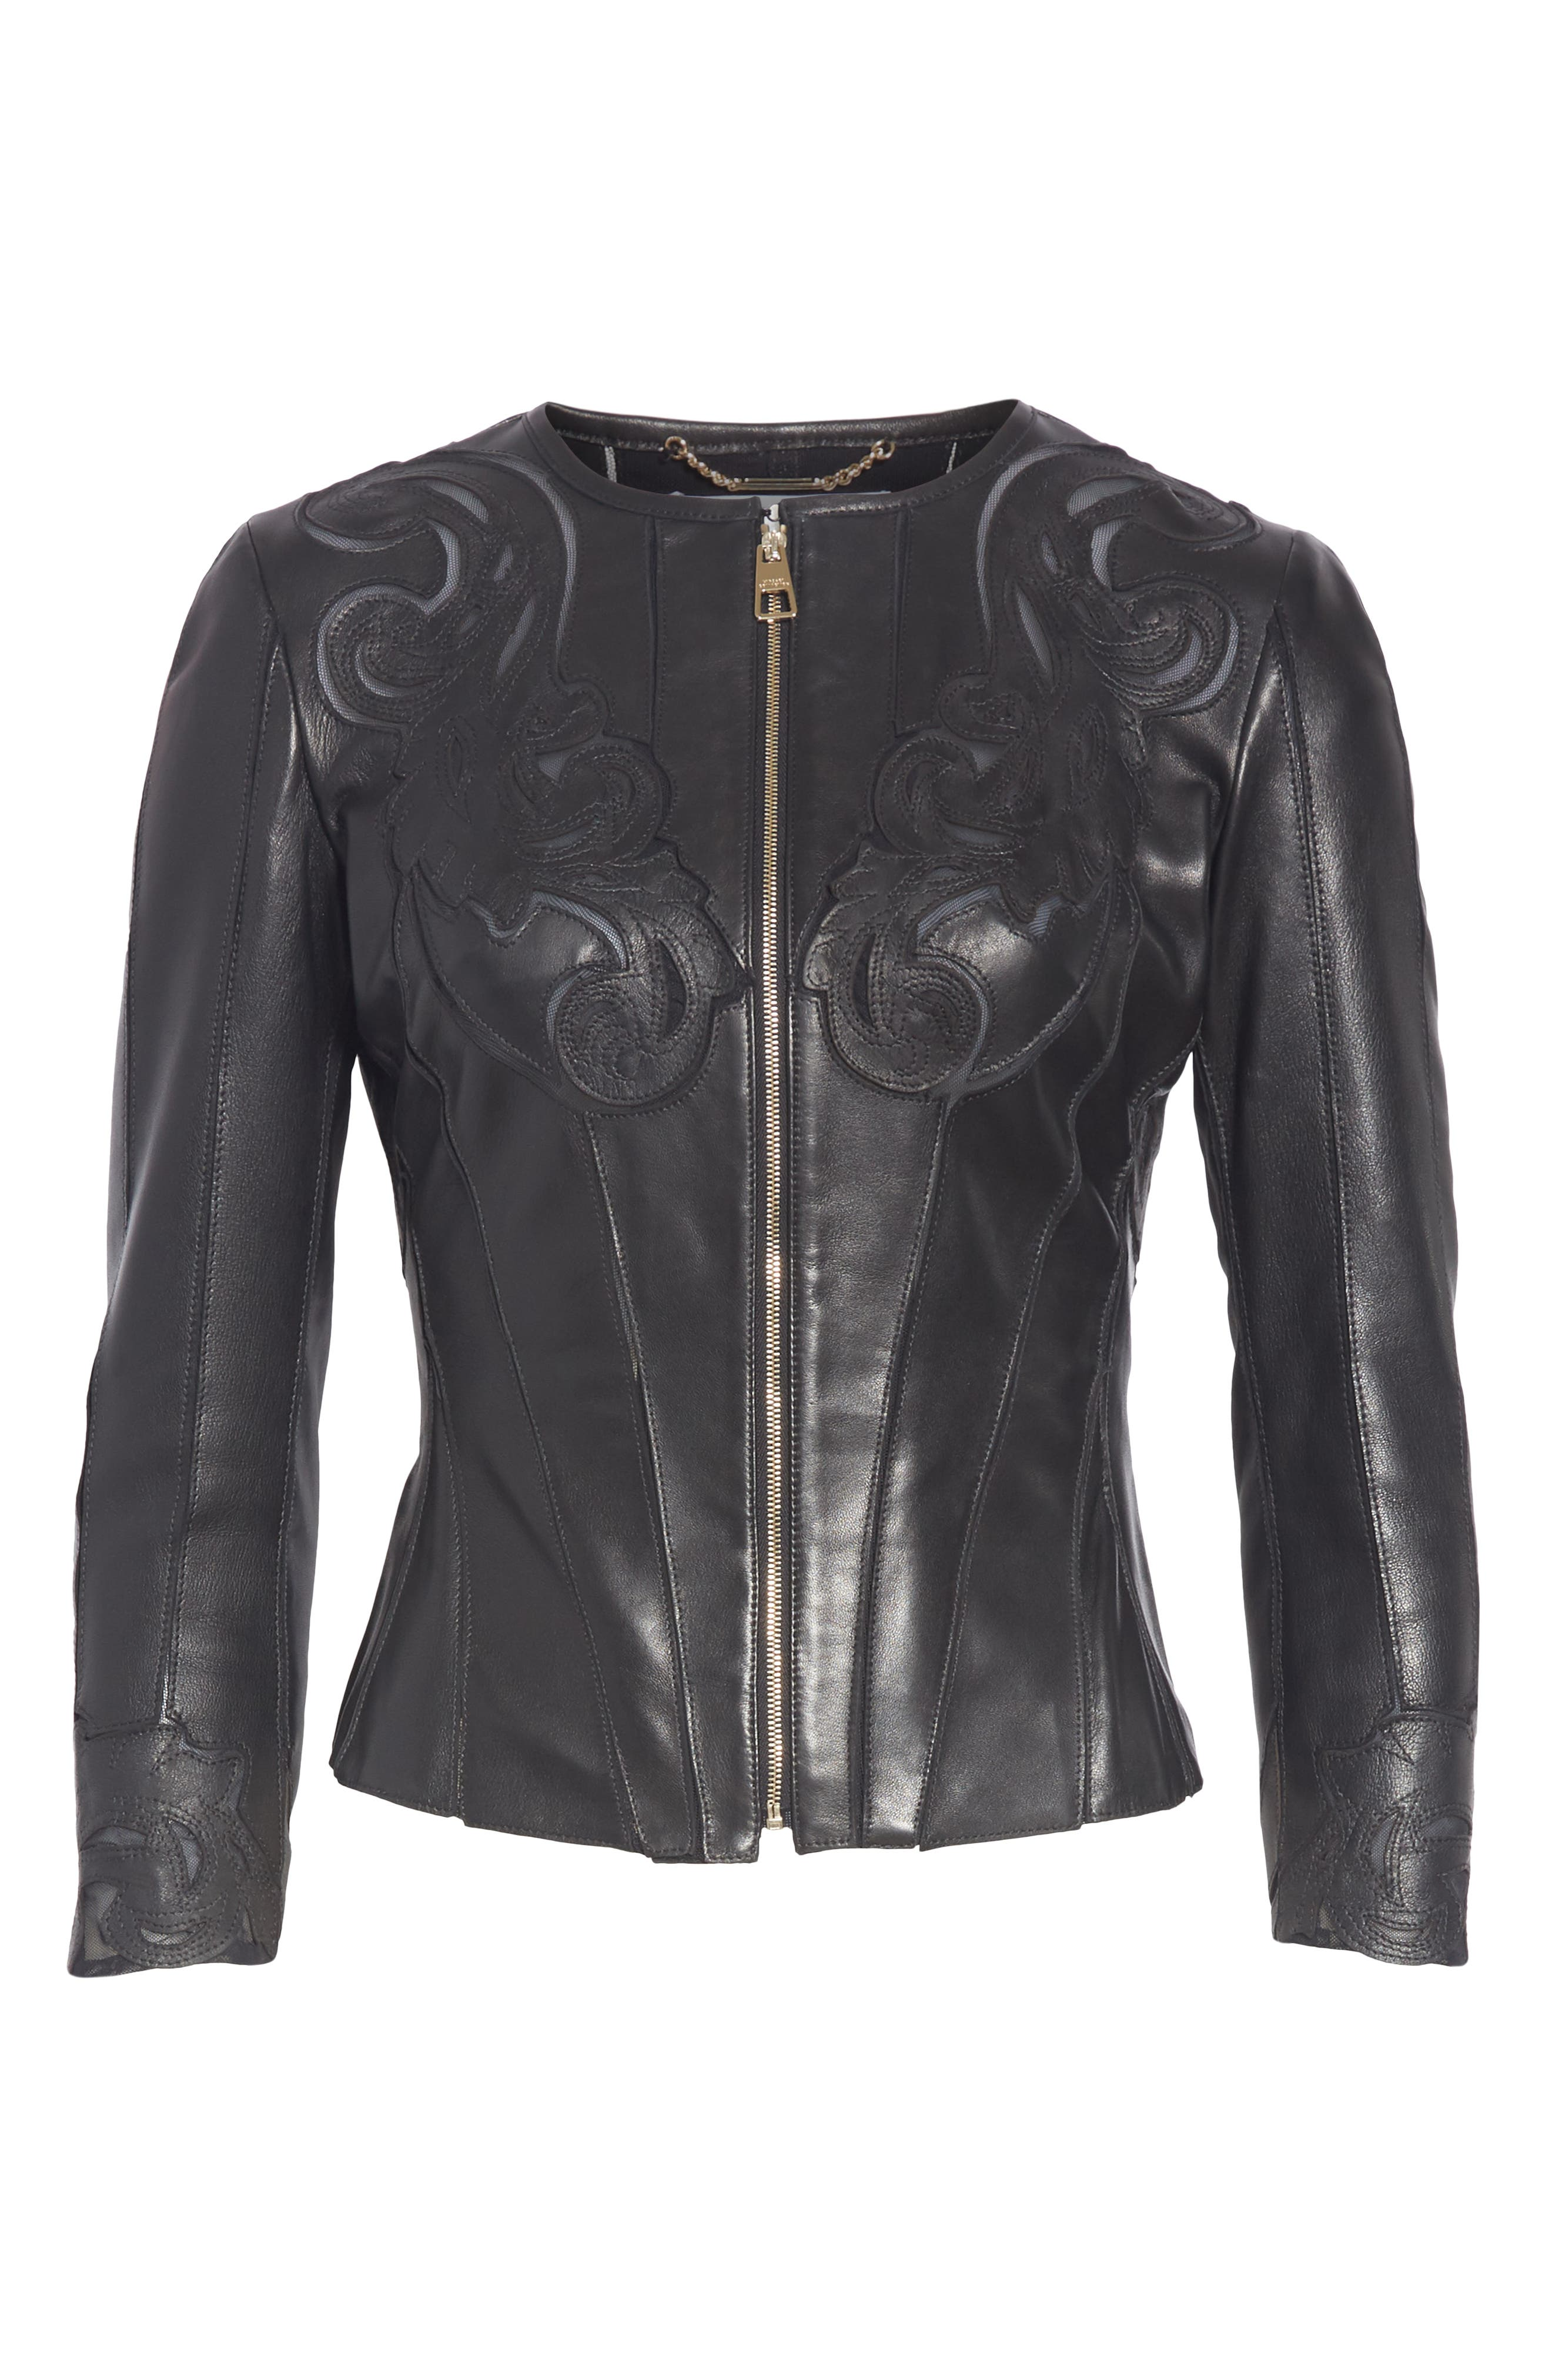 VERSACE COLLECTION, Fitted Leather Jacket, Alternate thumbnail 6, color, BLACK